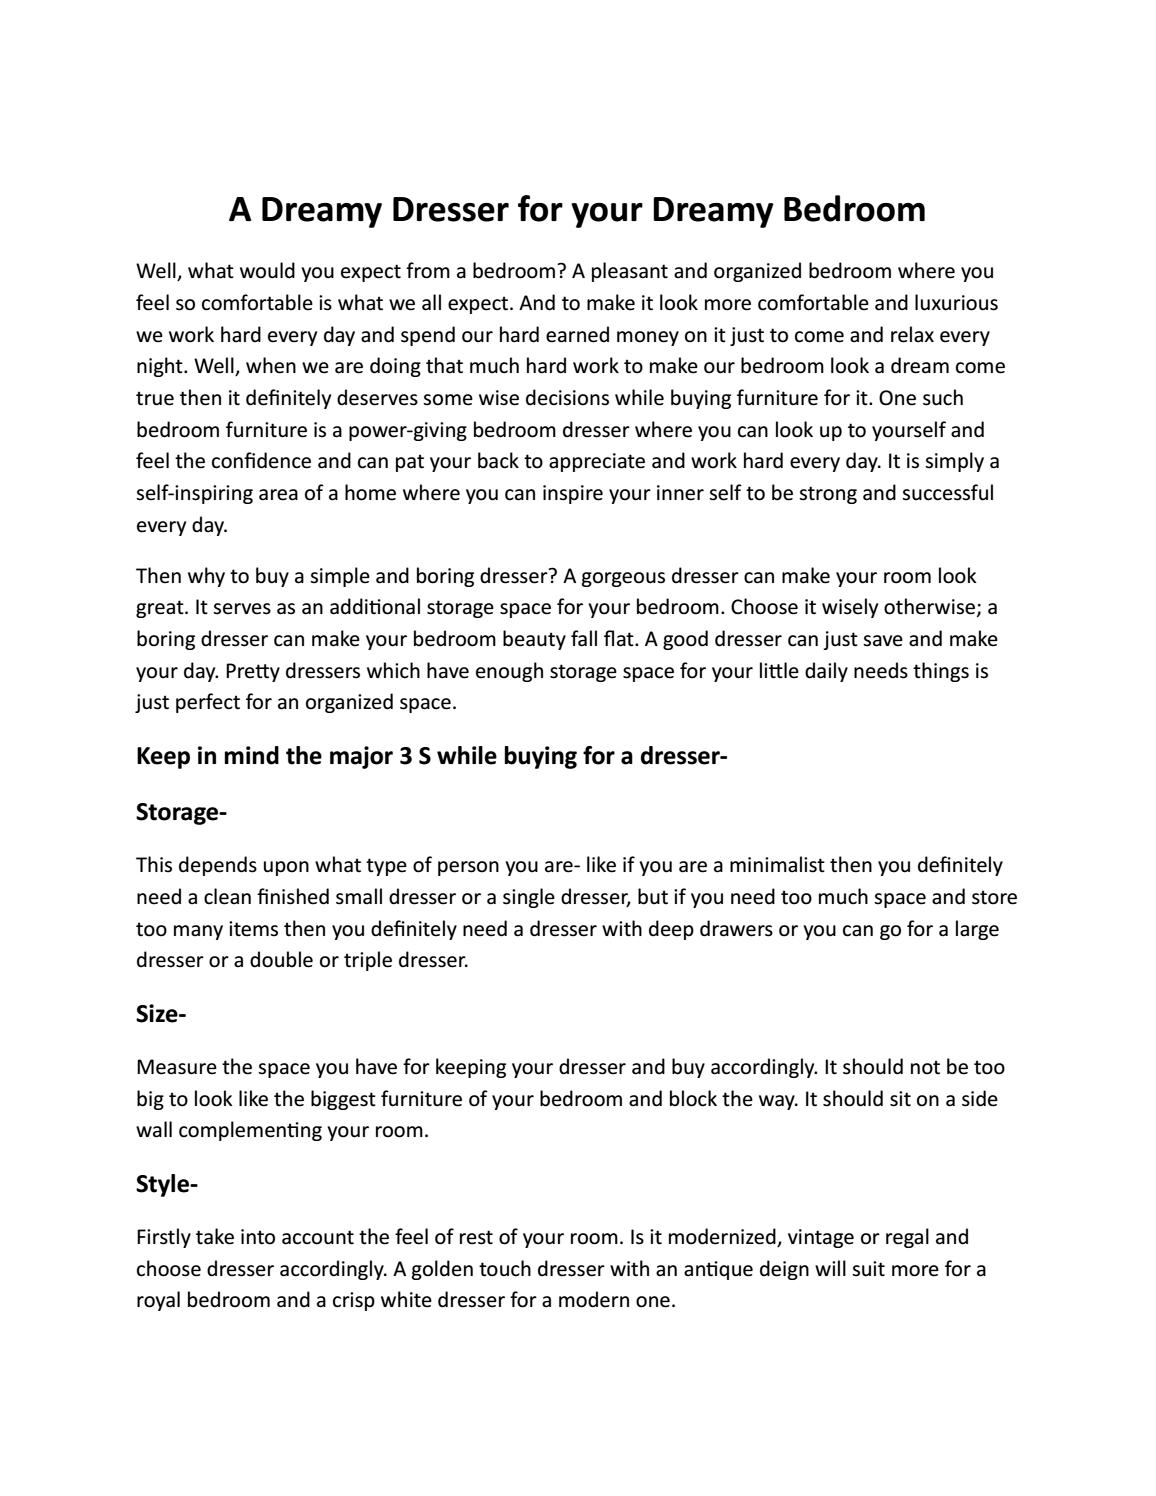 A Dreamy Dresser For Your Dreamy Bedroom By Sleep Center Issuu